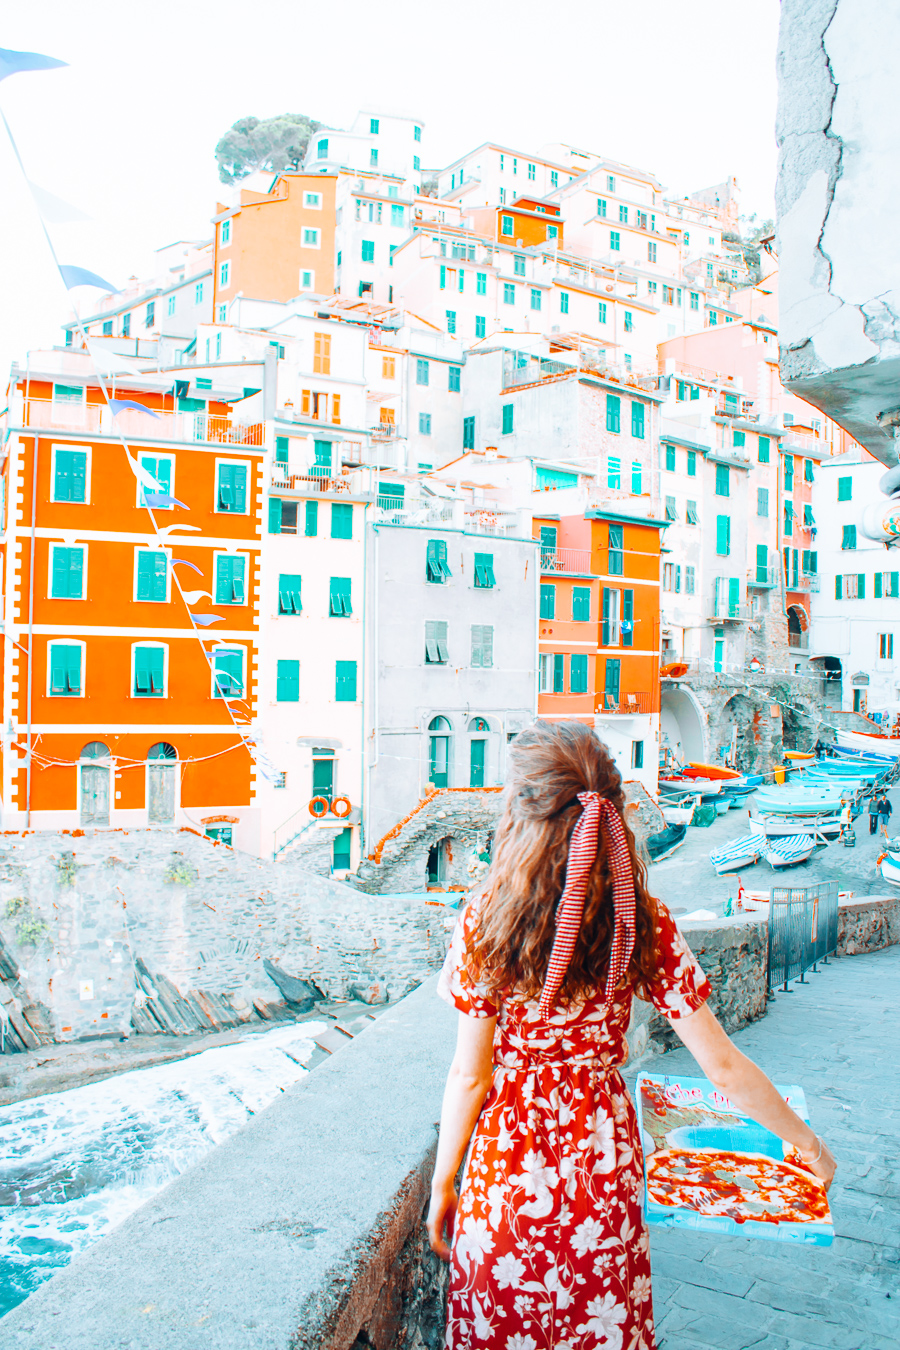 Girl with pizza in Riomaggiore